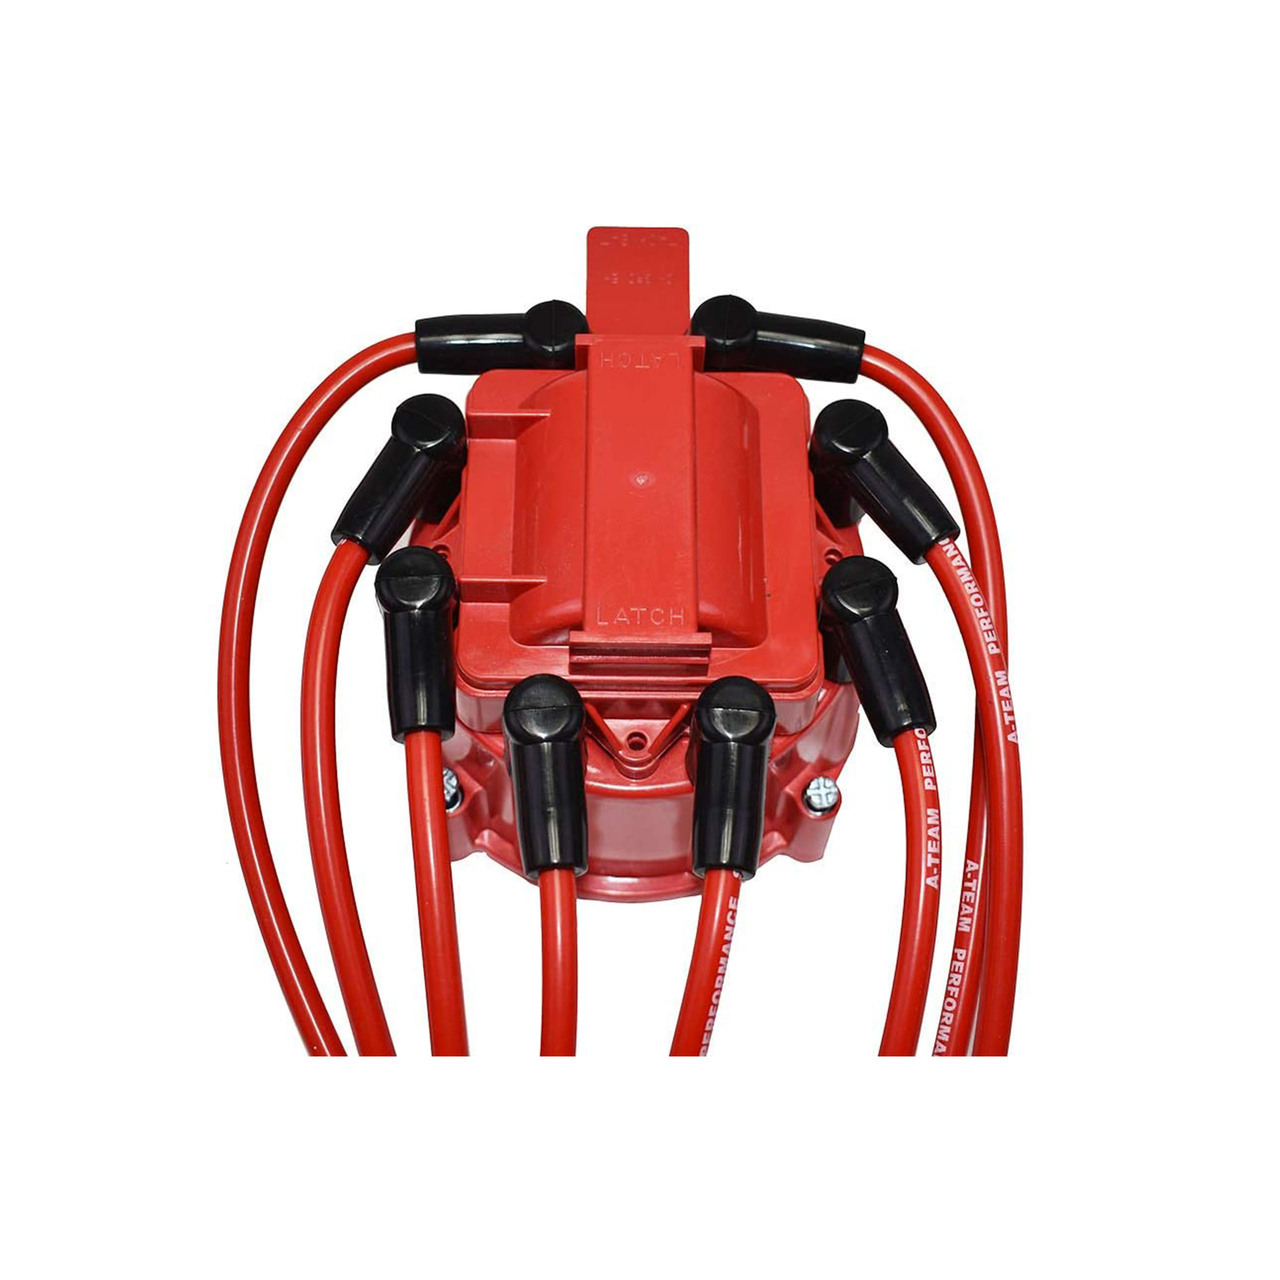 A-Team Performance 8.0mm Red Silicone Spark Plug Wires BBC Big Block Chevy Chevrolet GMC Straight Boot Wires 396 402 427 454 502 572